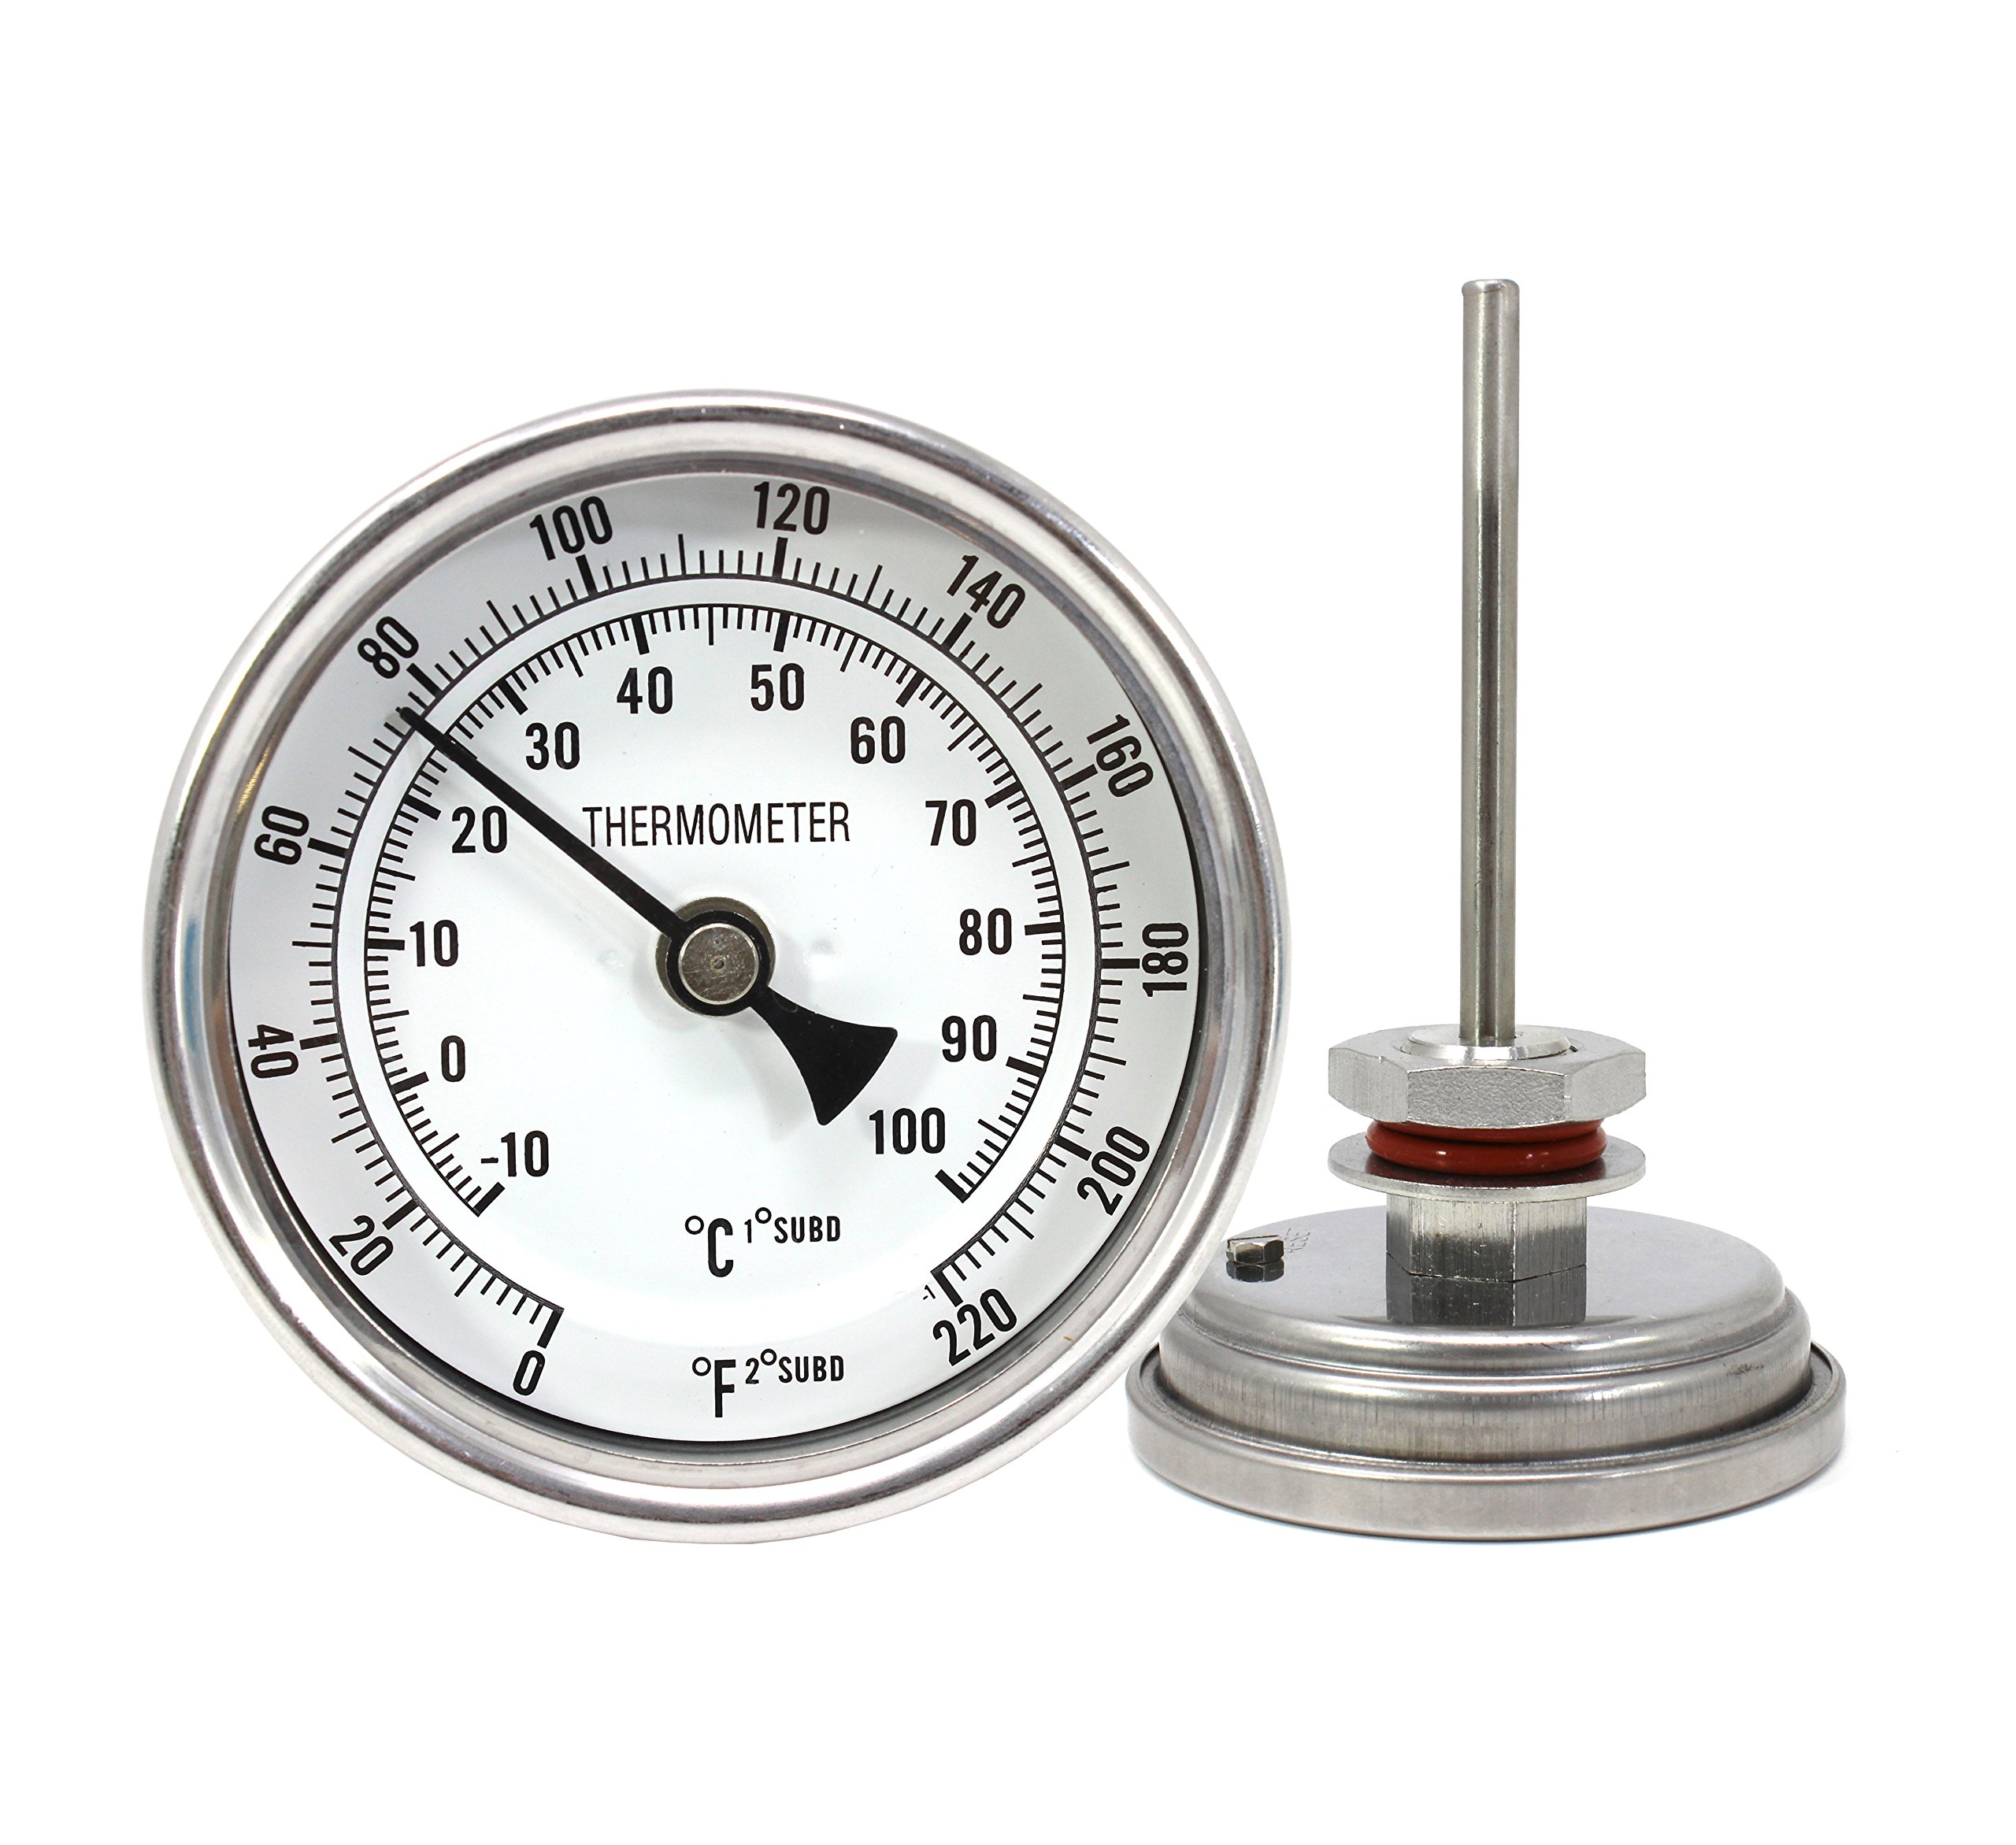 CONCORD 3'' Stainless Steel Thermometer with Mounting Assembly. Great for Home Brewing